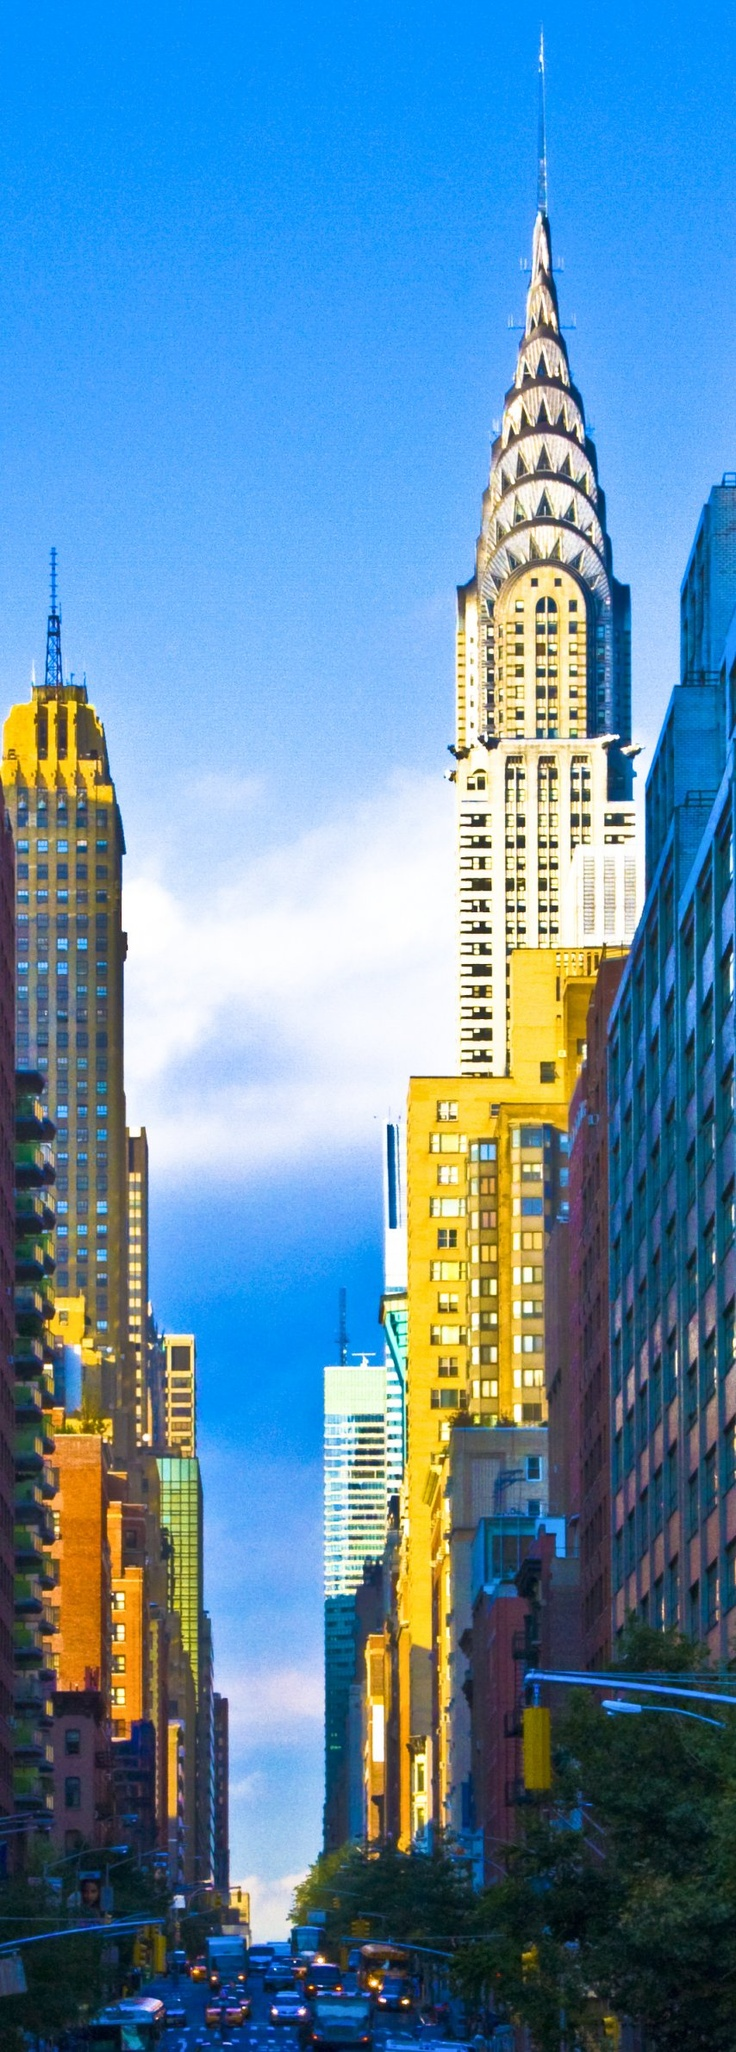 New York, the best place to live and work